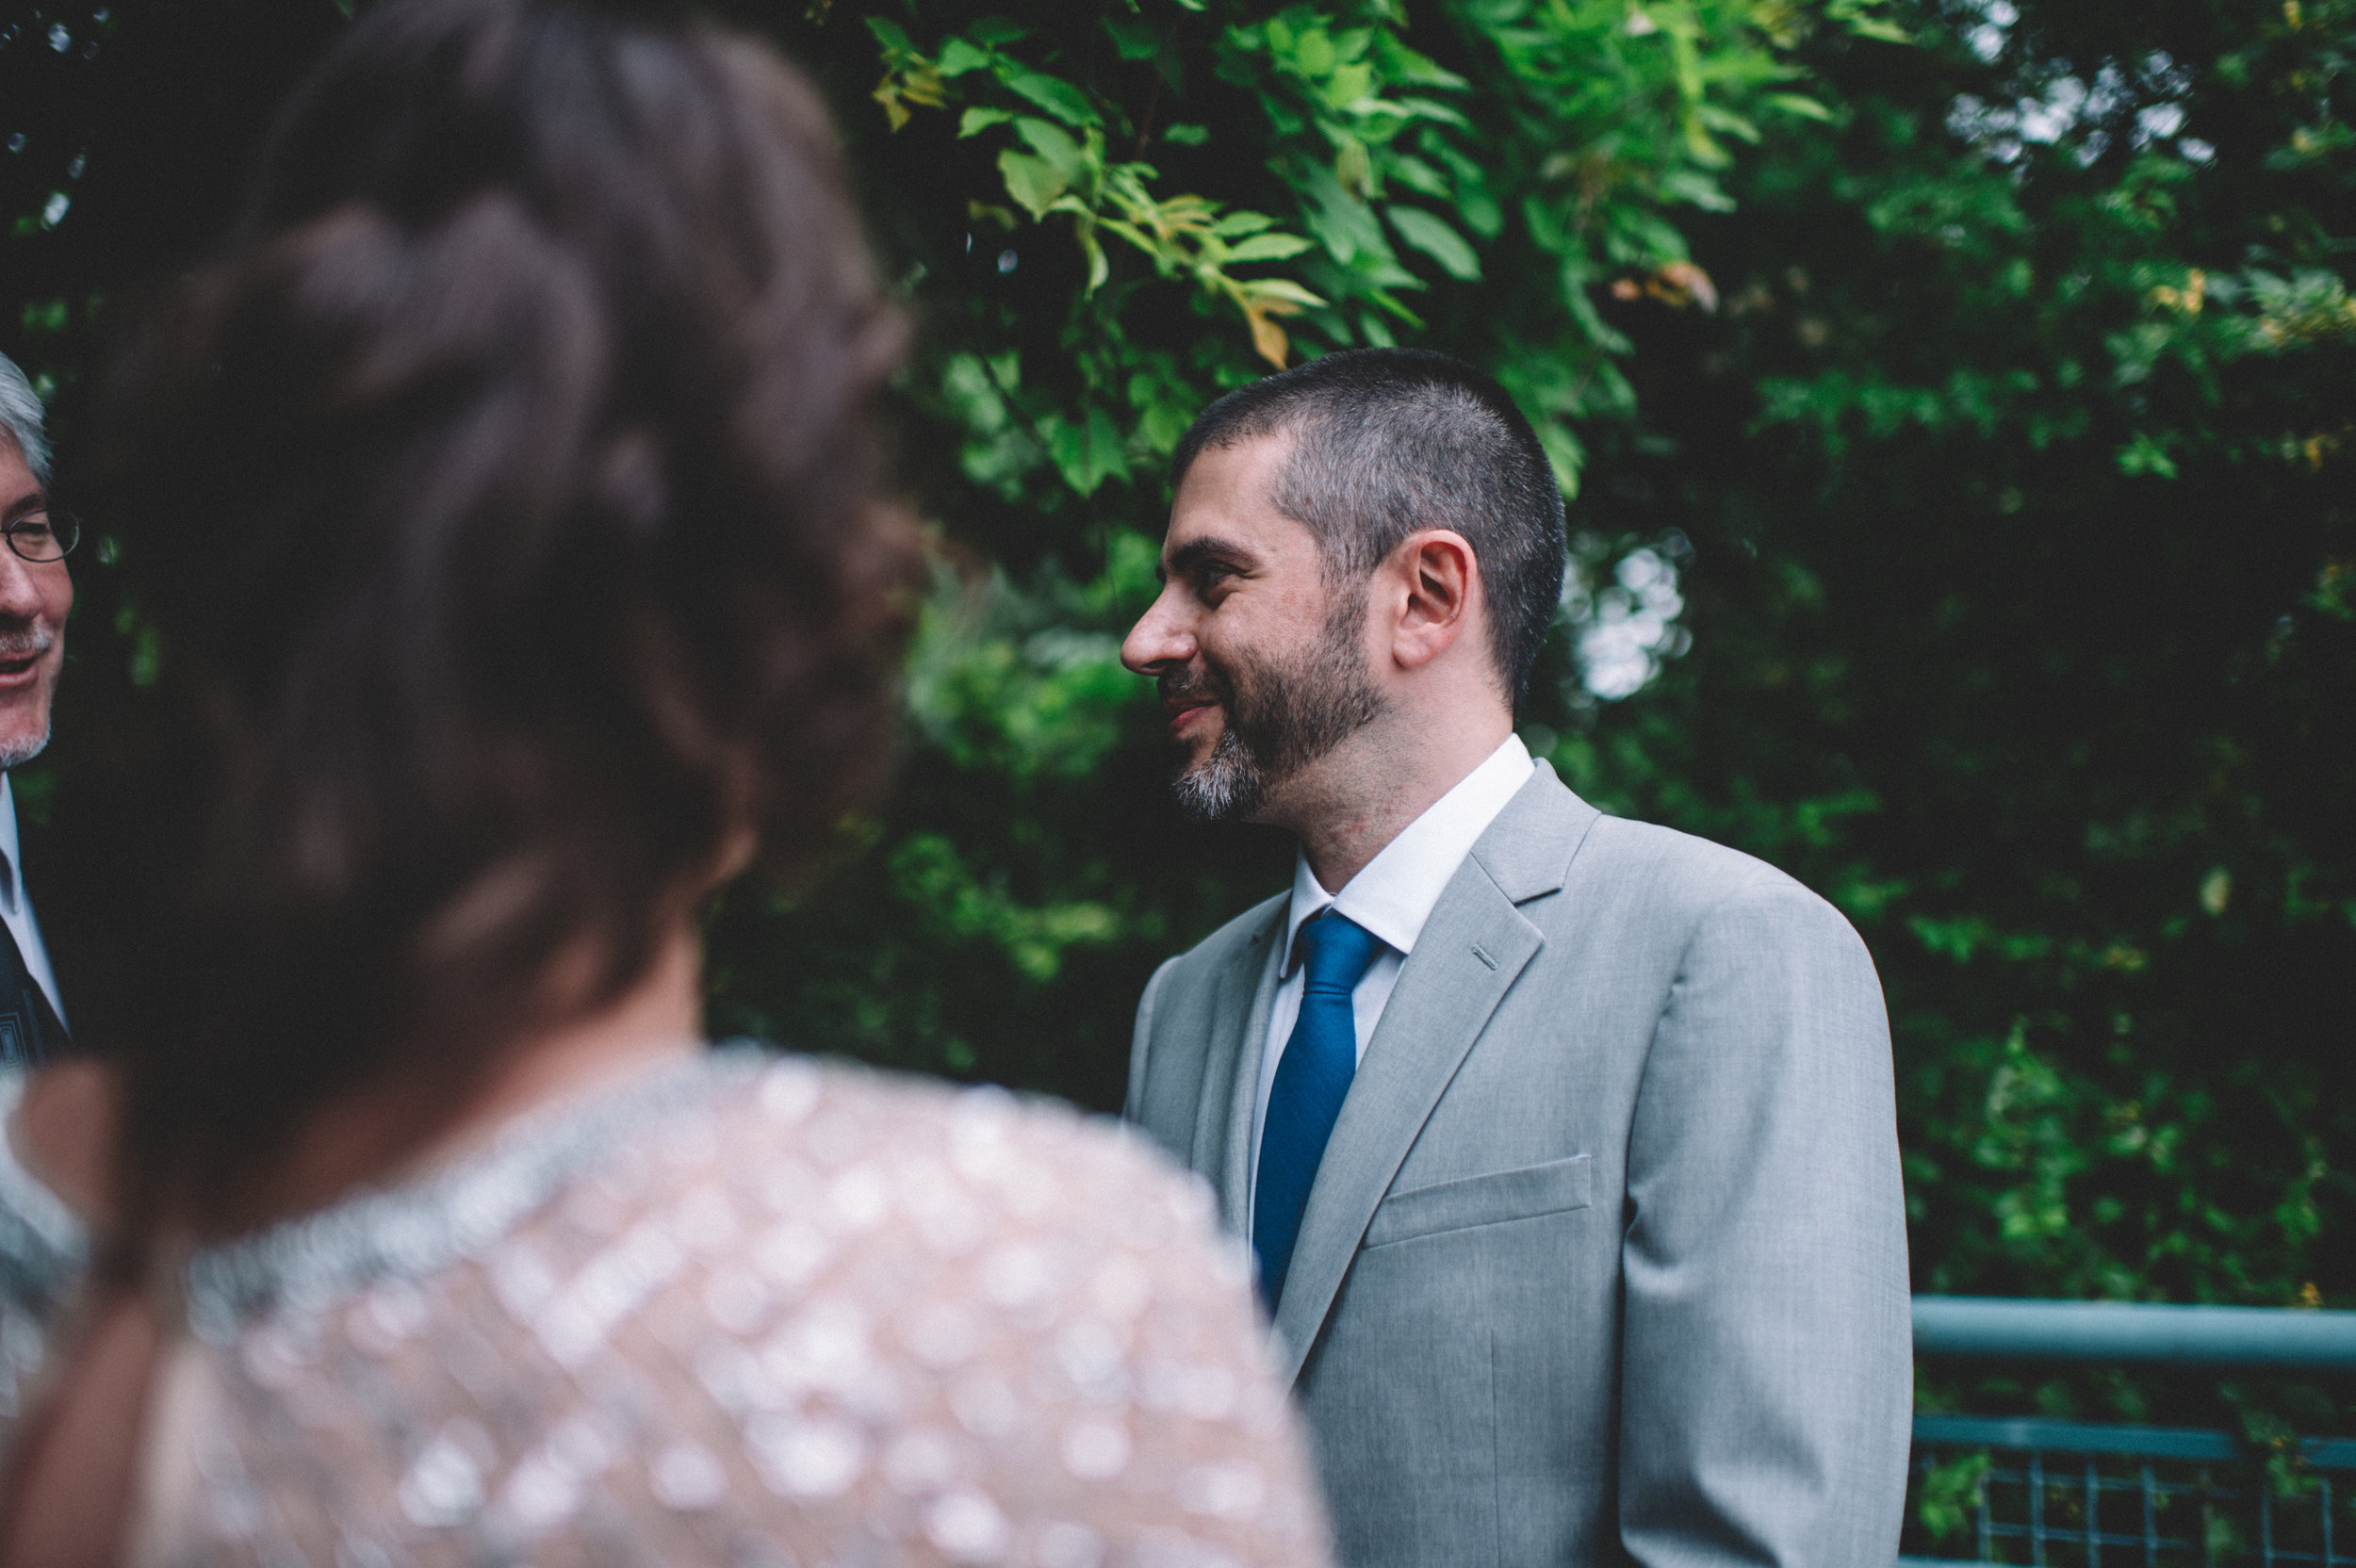 Pittsburgh Elopement Photographer - Bevilacqua-216.jpg